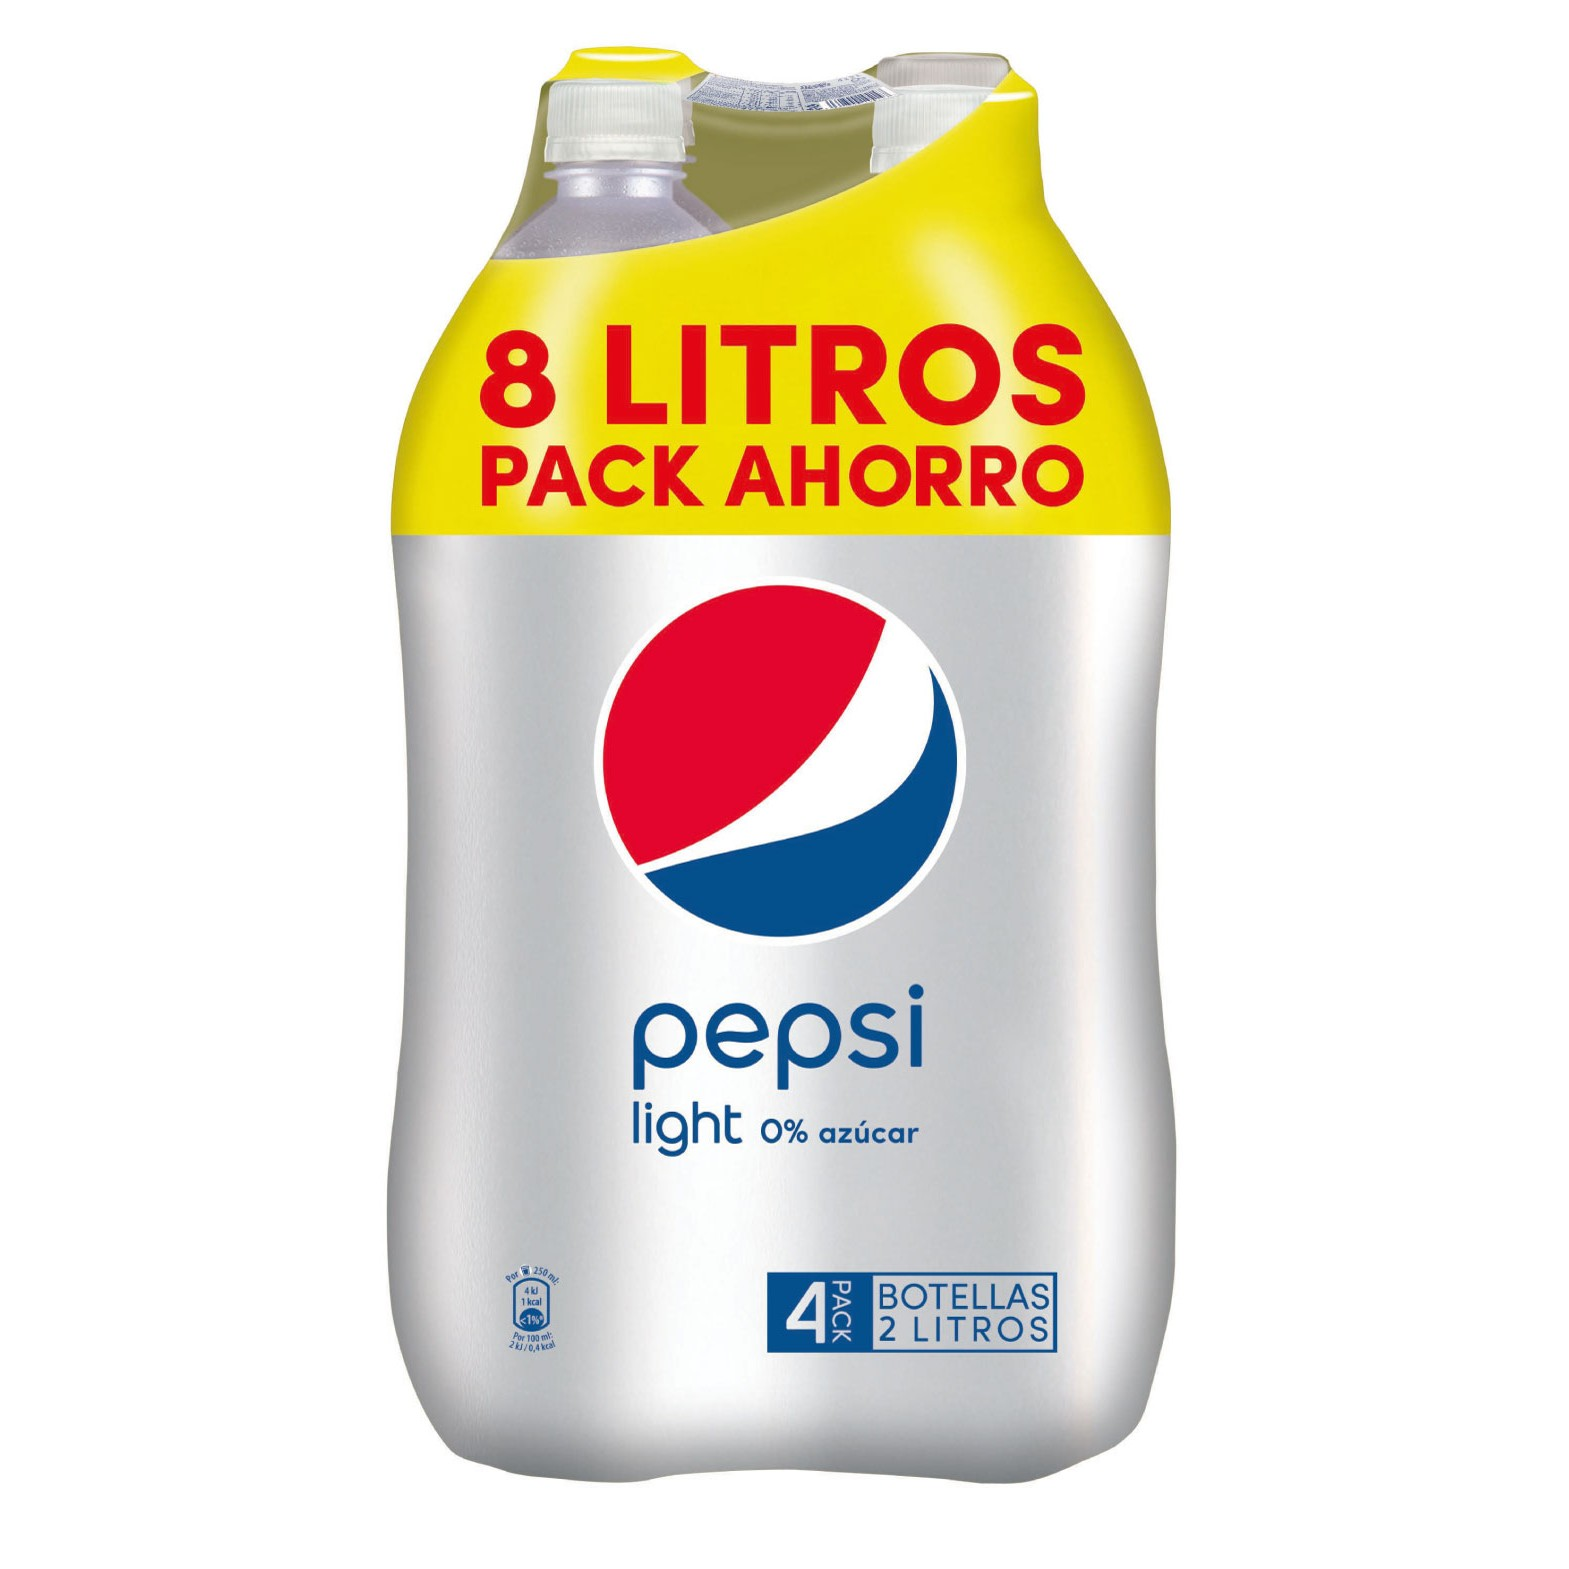 Pepsi light de 2l. por 4 unidades en botella